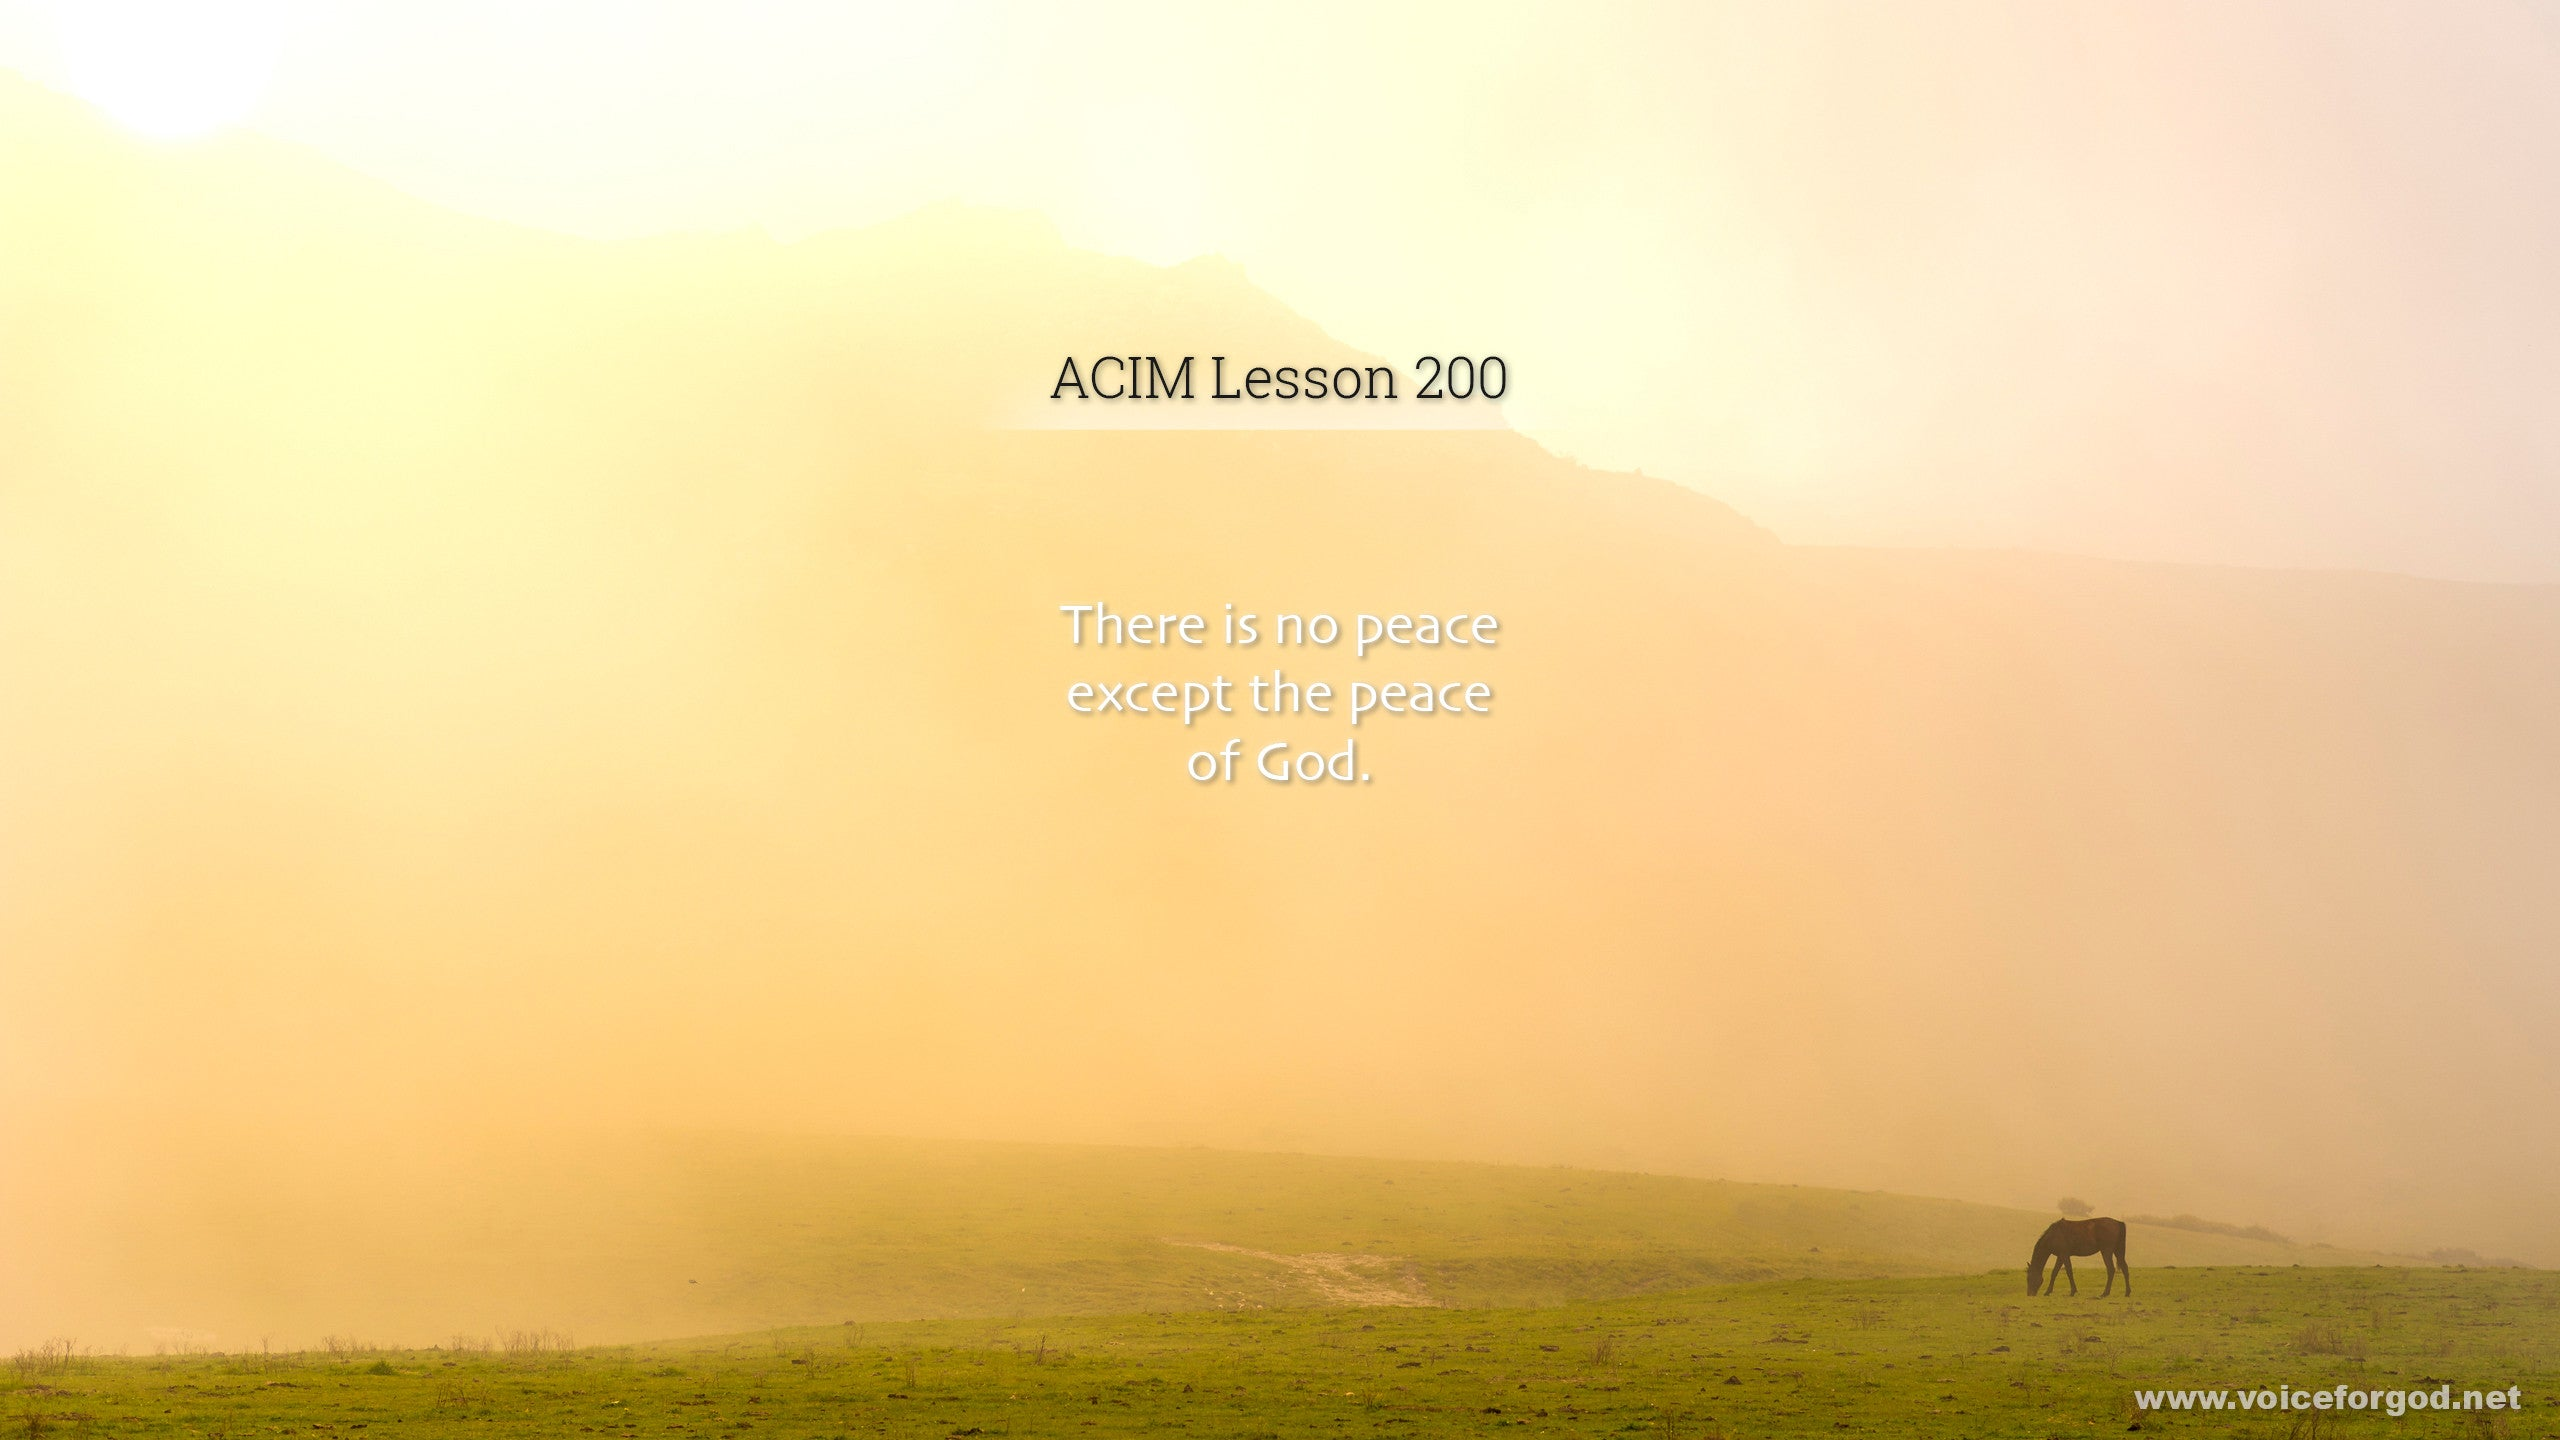 ACIM Lesson 200 - A Course in Miracles Workbook Lesson 200